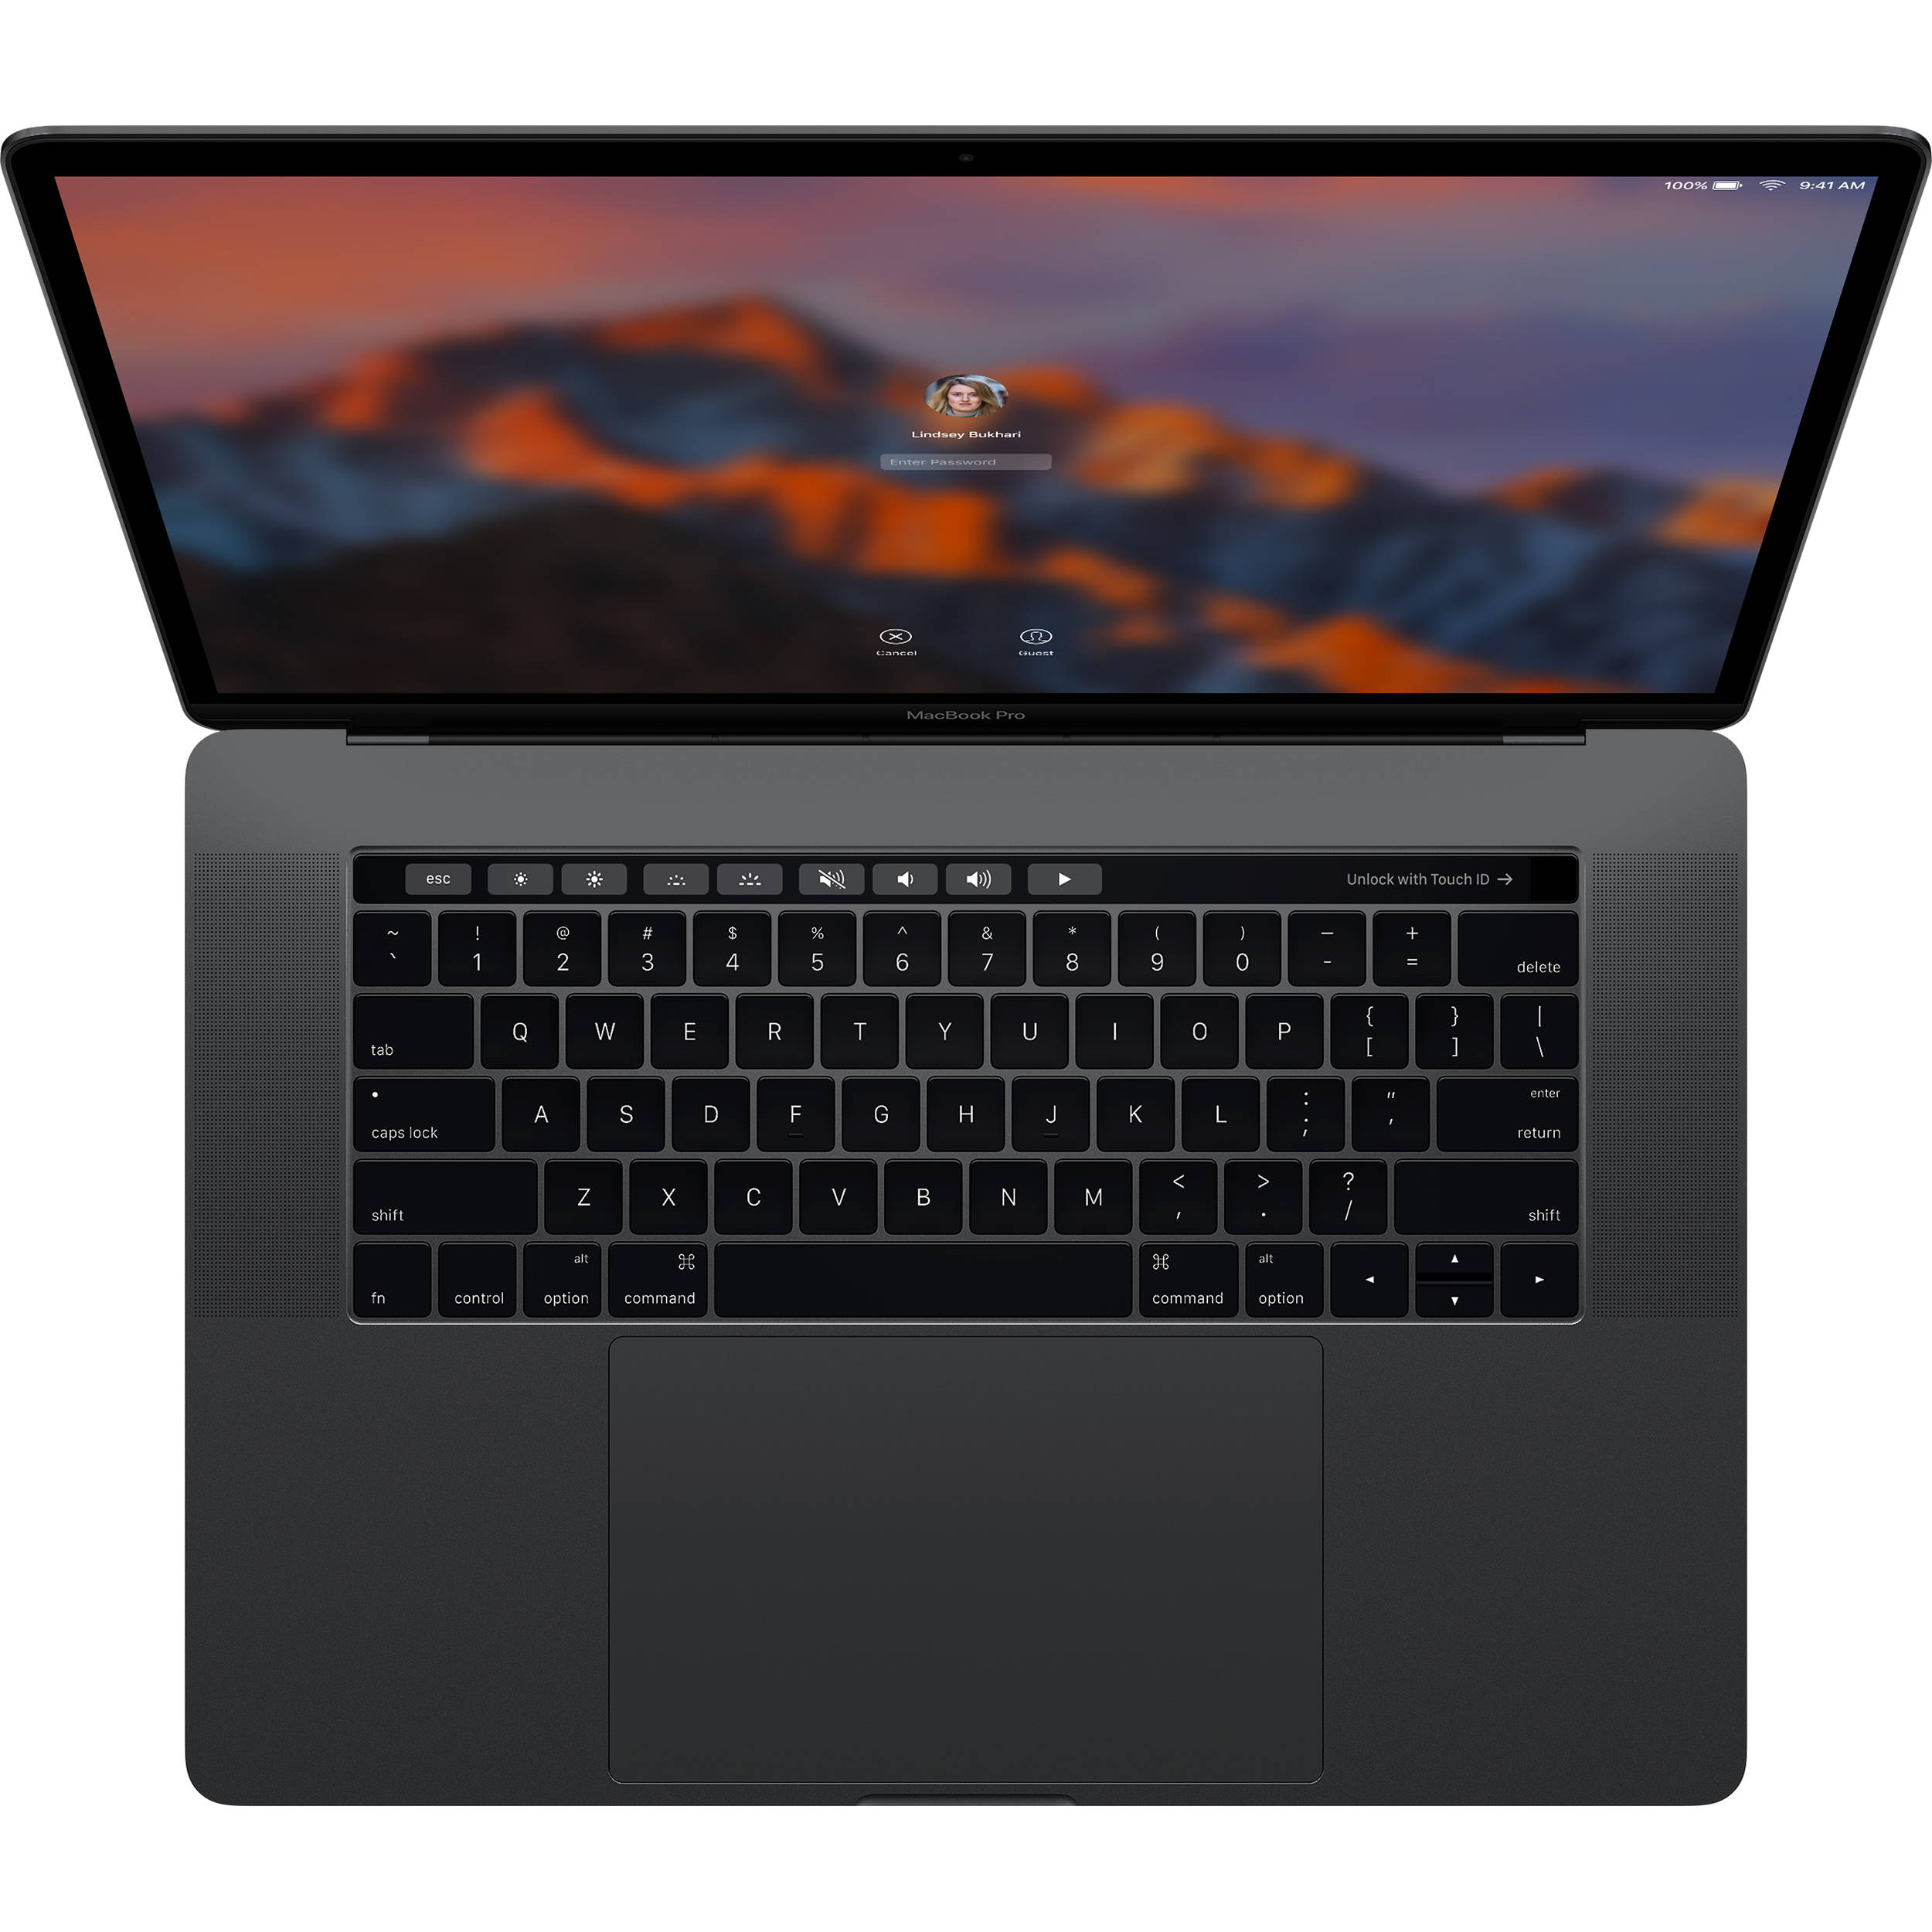 MPTT2 - MacBook Pro 2017 15inch Quad I7 3.1Ghz 16GB 1TB SSD AMD PRO 560M 4GB New 98%